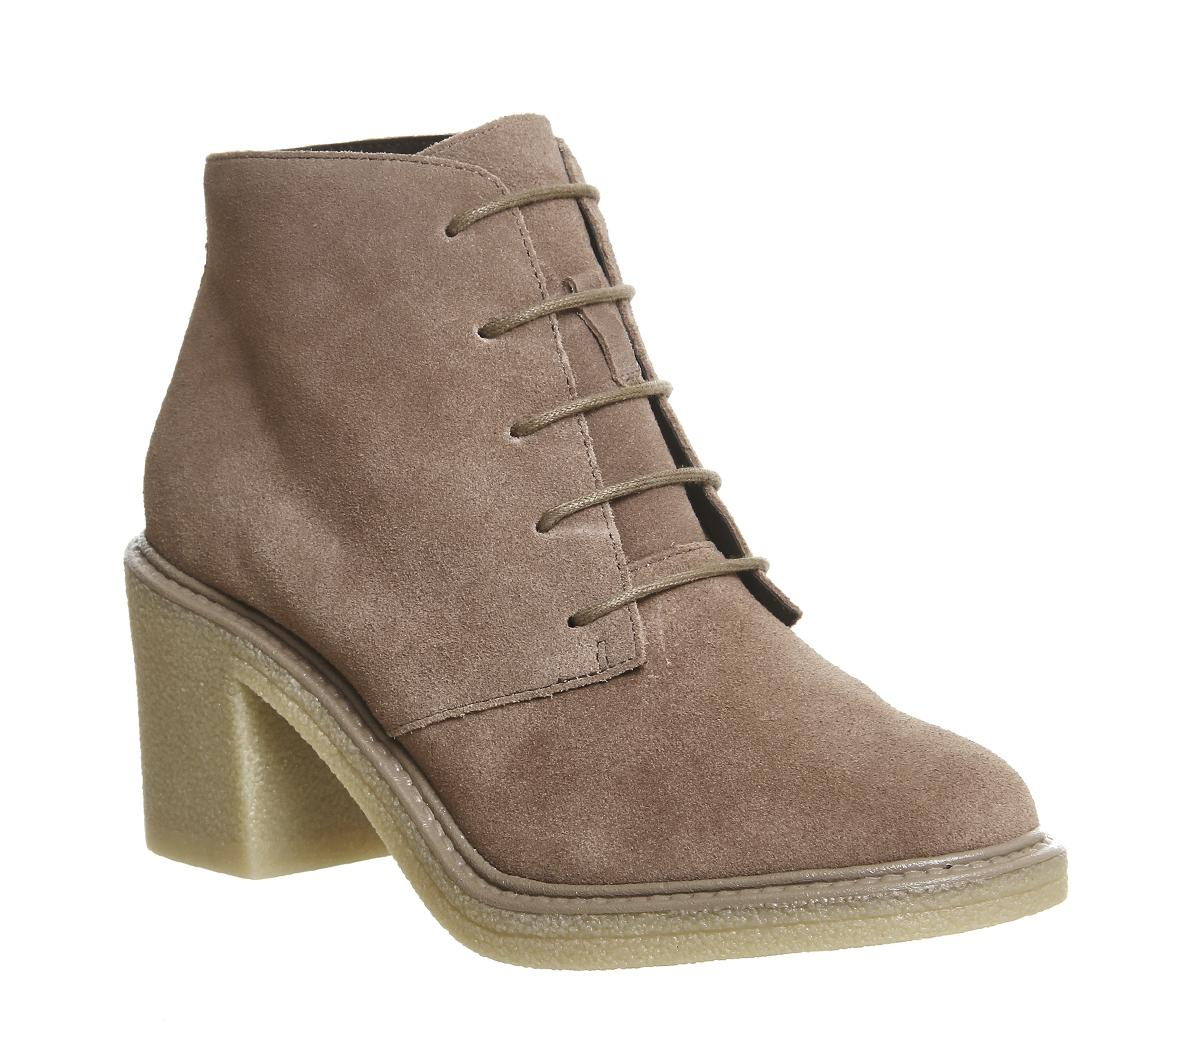 Lulu Lace Up Ankle Boots